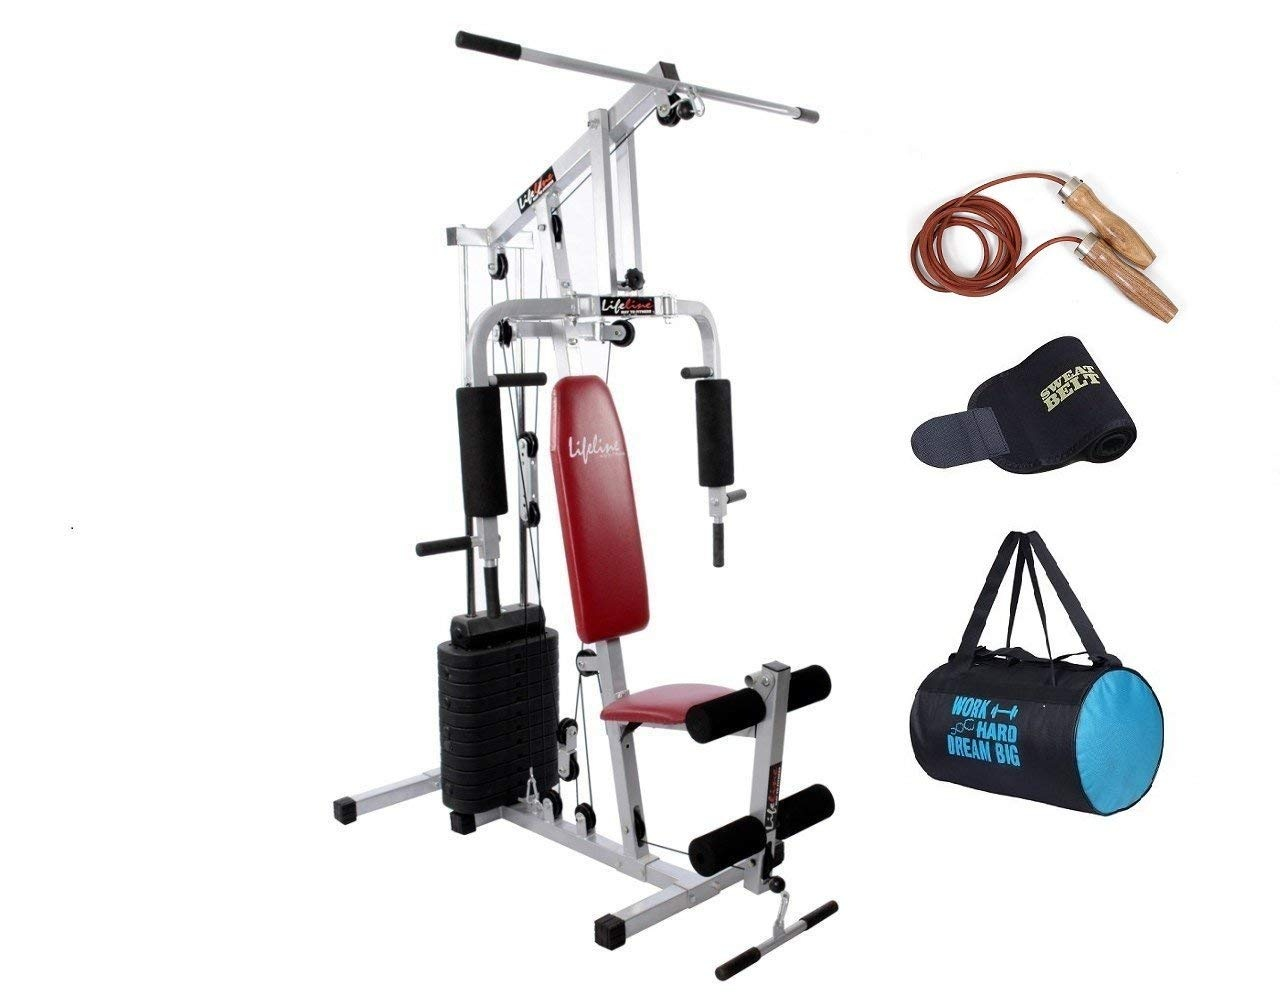 What is the best home gym set available in india at a reasonable